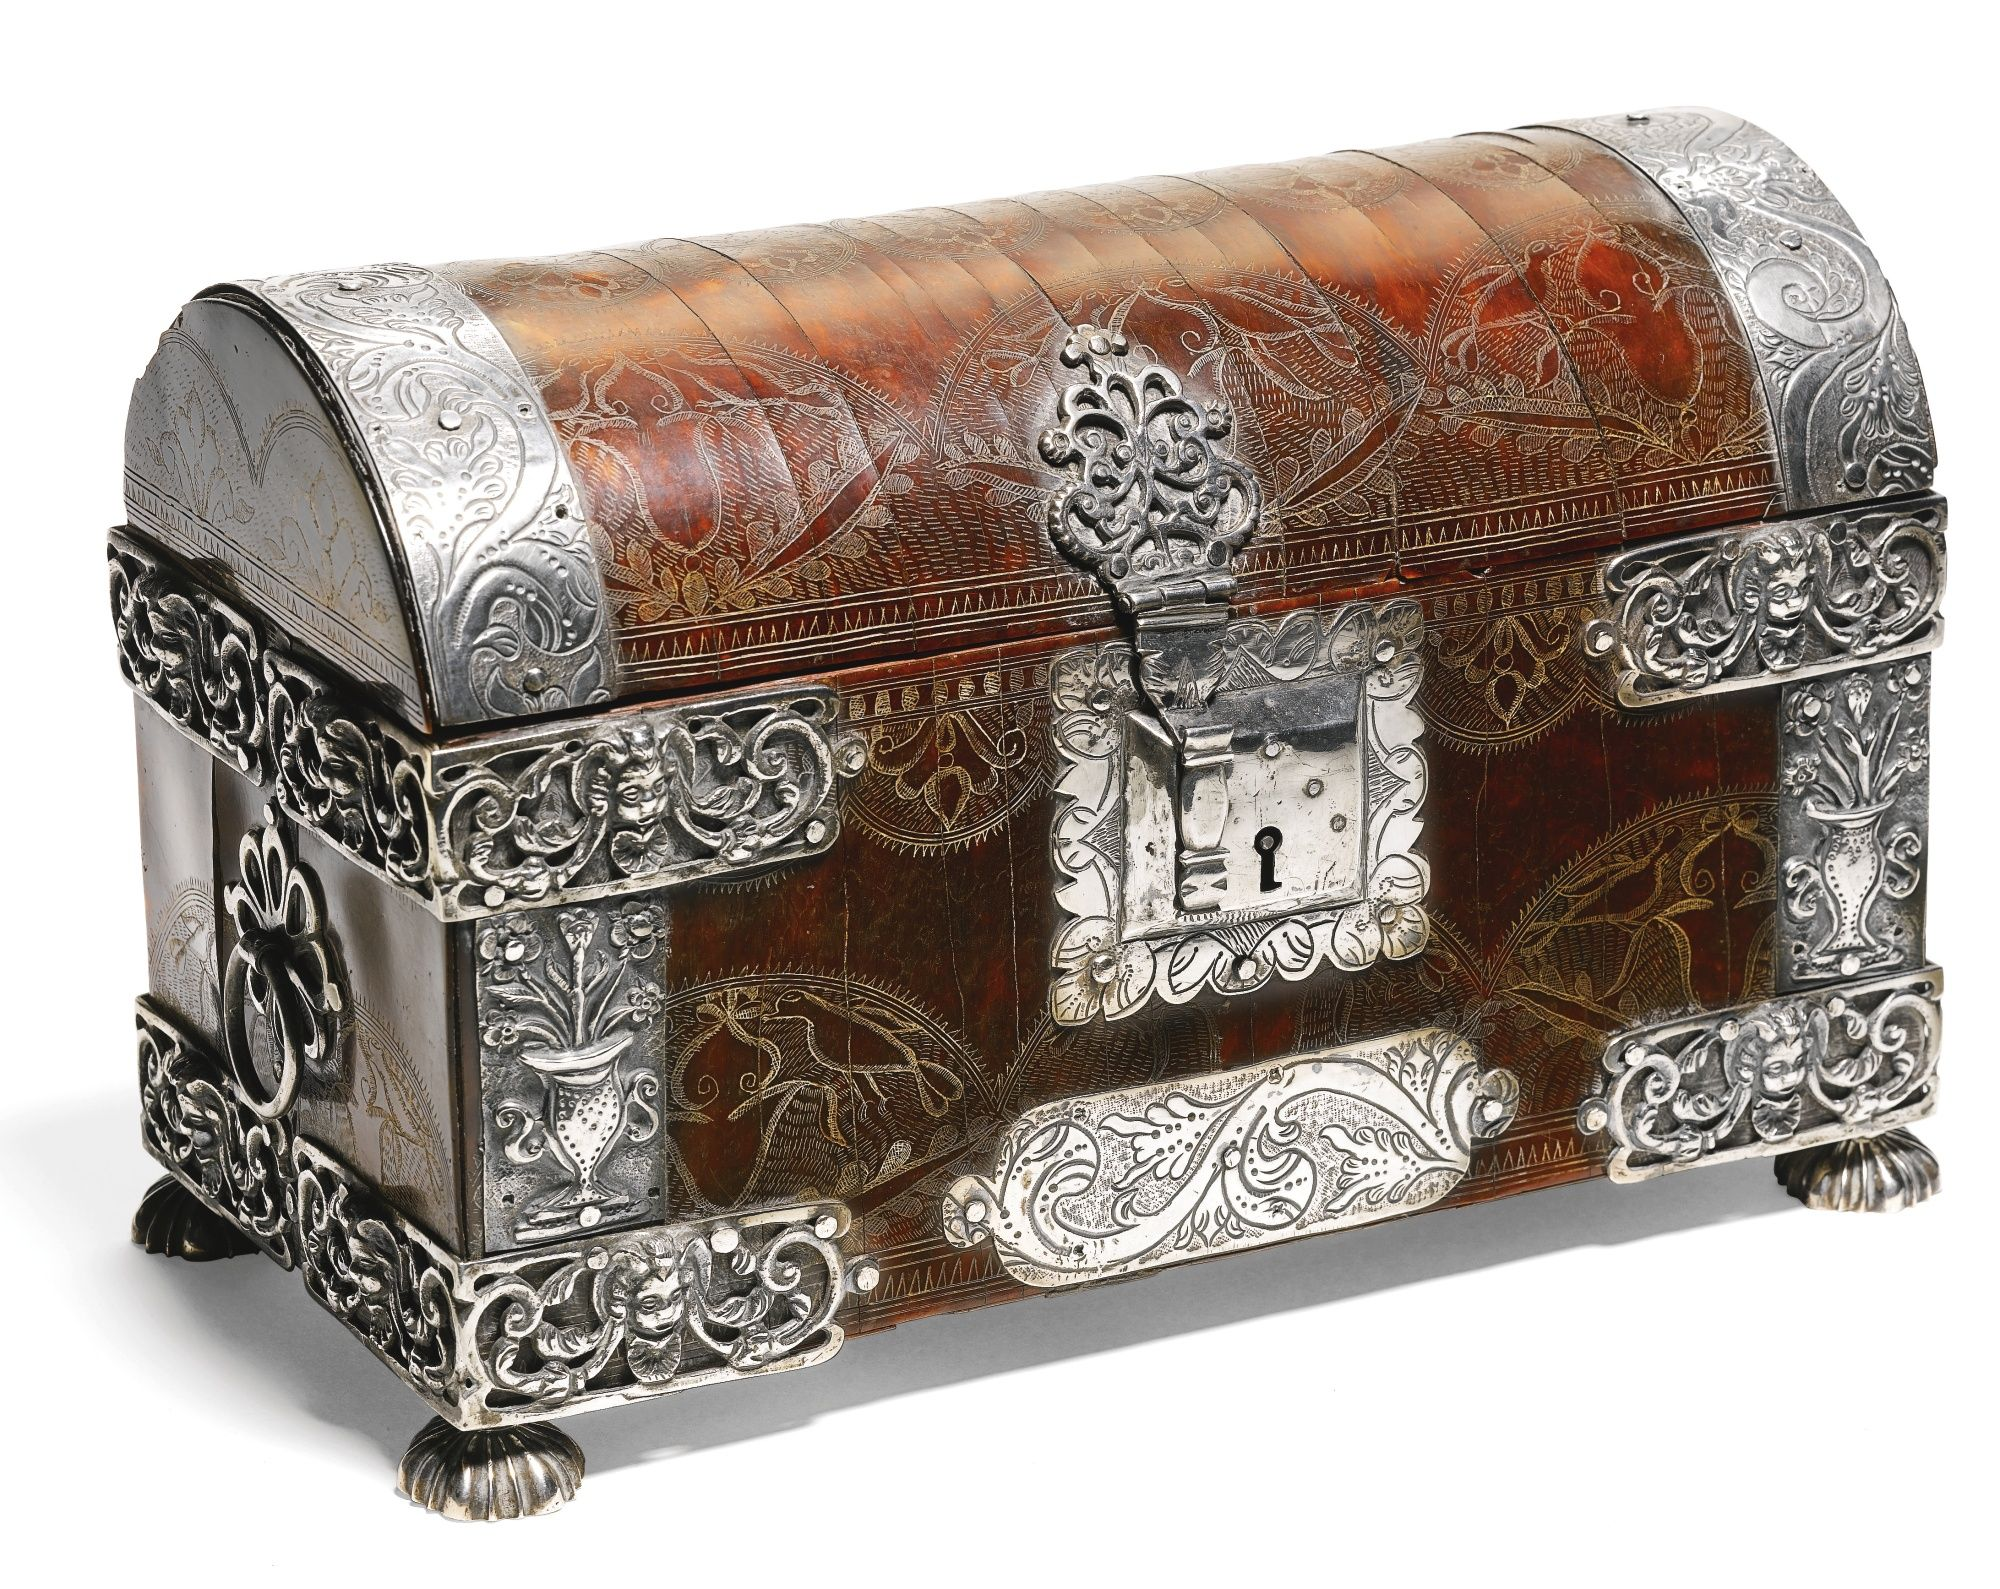 Spanish or Dutch Colonial, circa 1700 CASKET tortoiseshell, around a wood core, with silver mounts